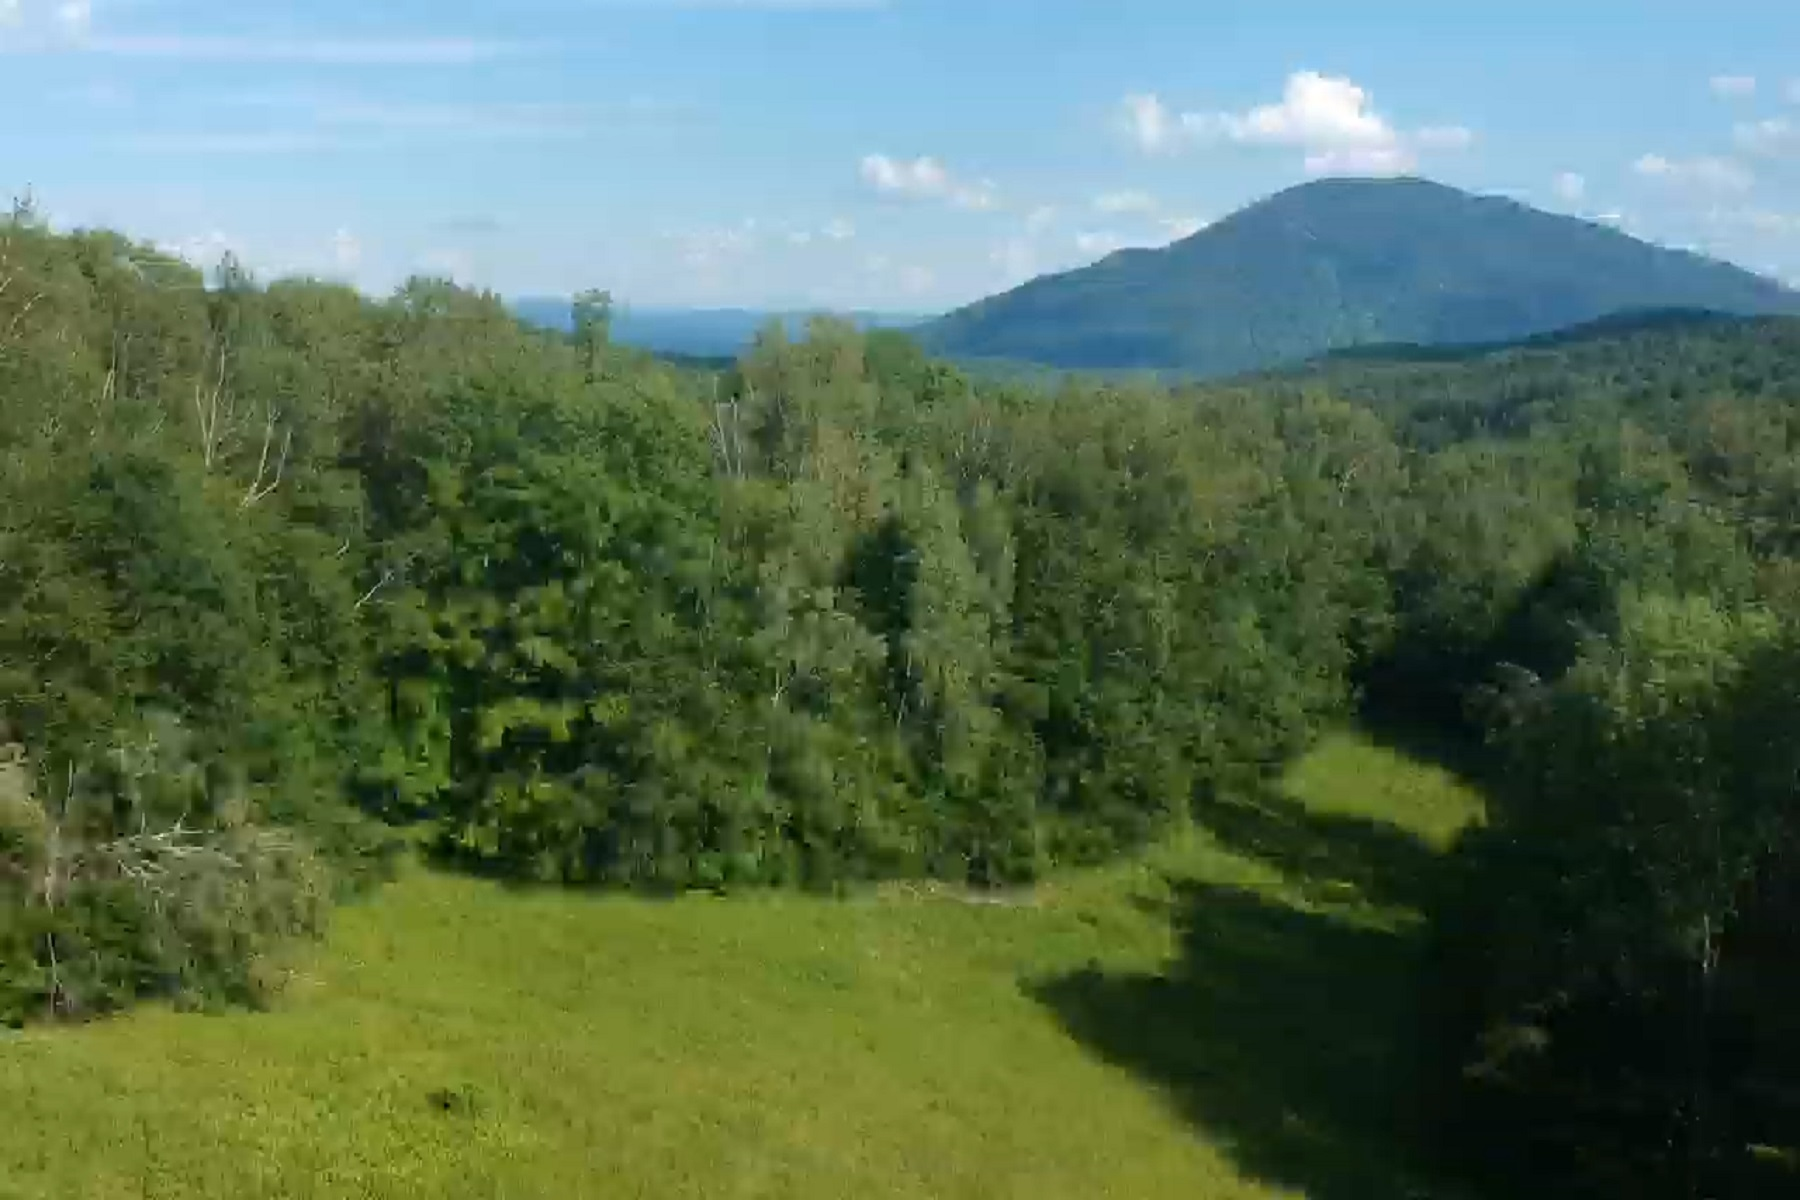 Property for Sale at Offered In Its Entirety Silver Hill Road West Windsor, Vermont 05089 United States